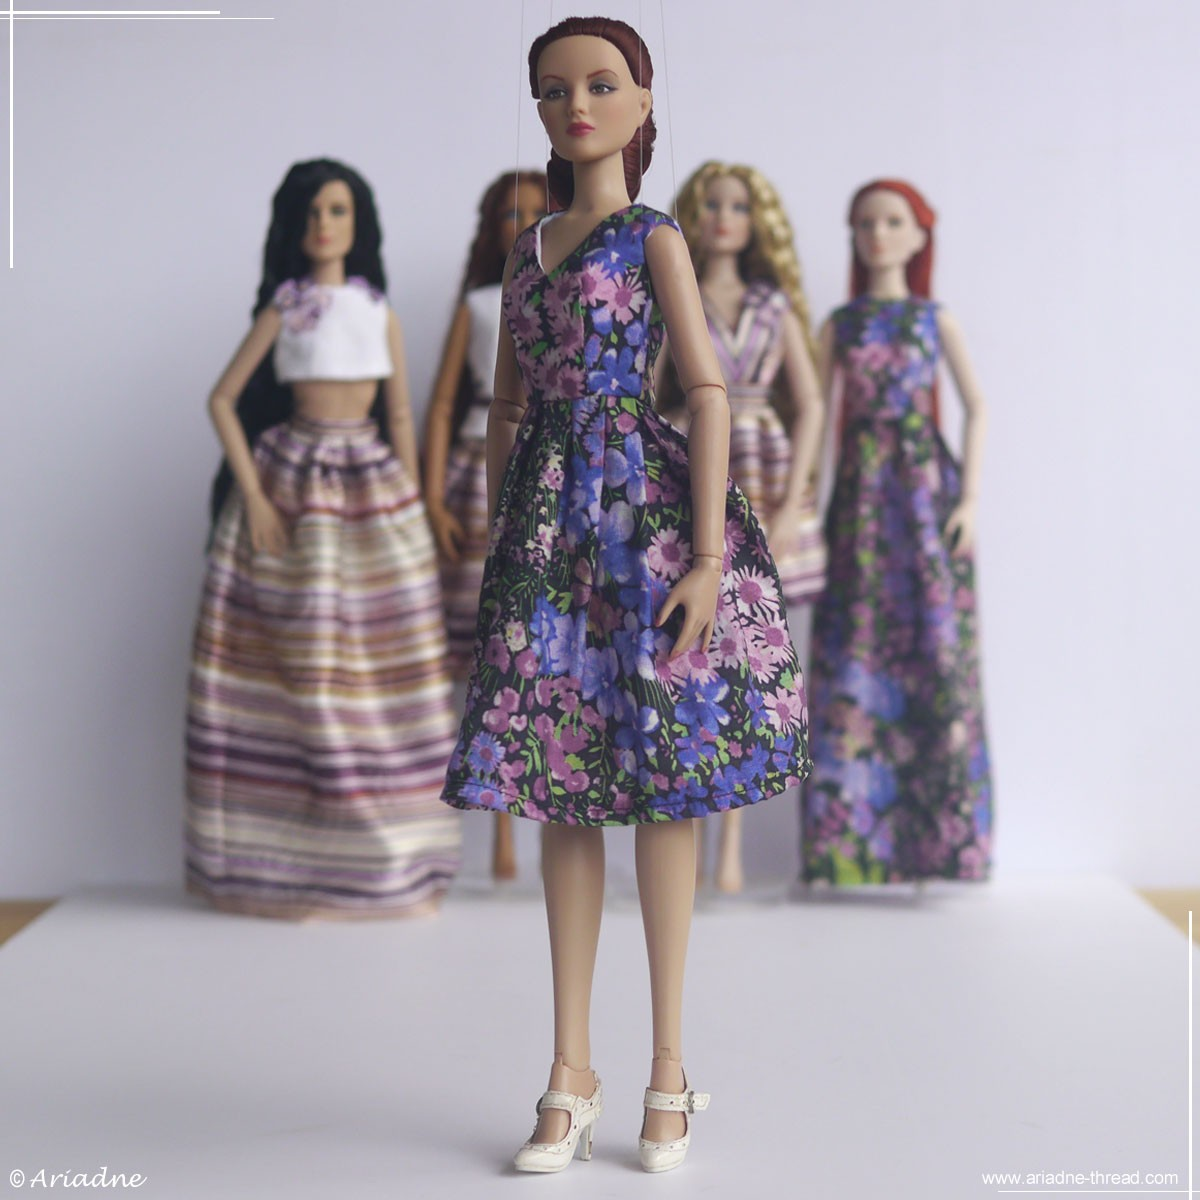 Tonner Antoinette in outfit, inspired by Alberta Ferretti